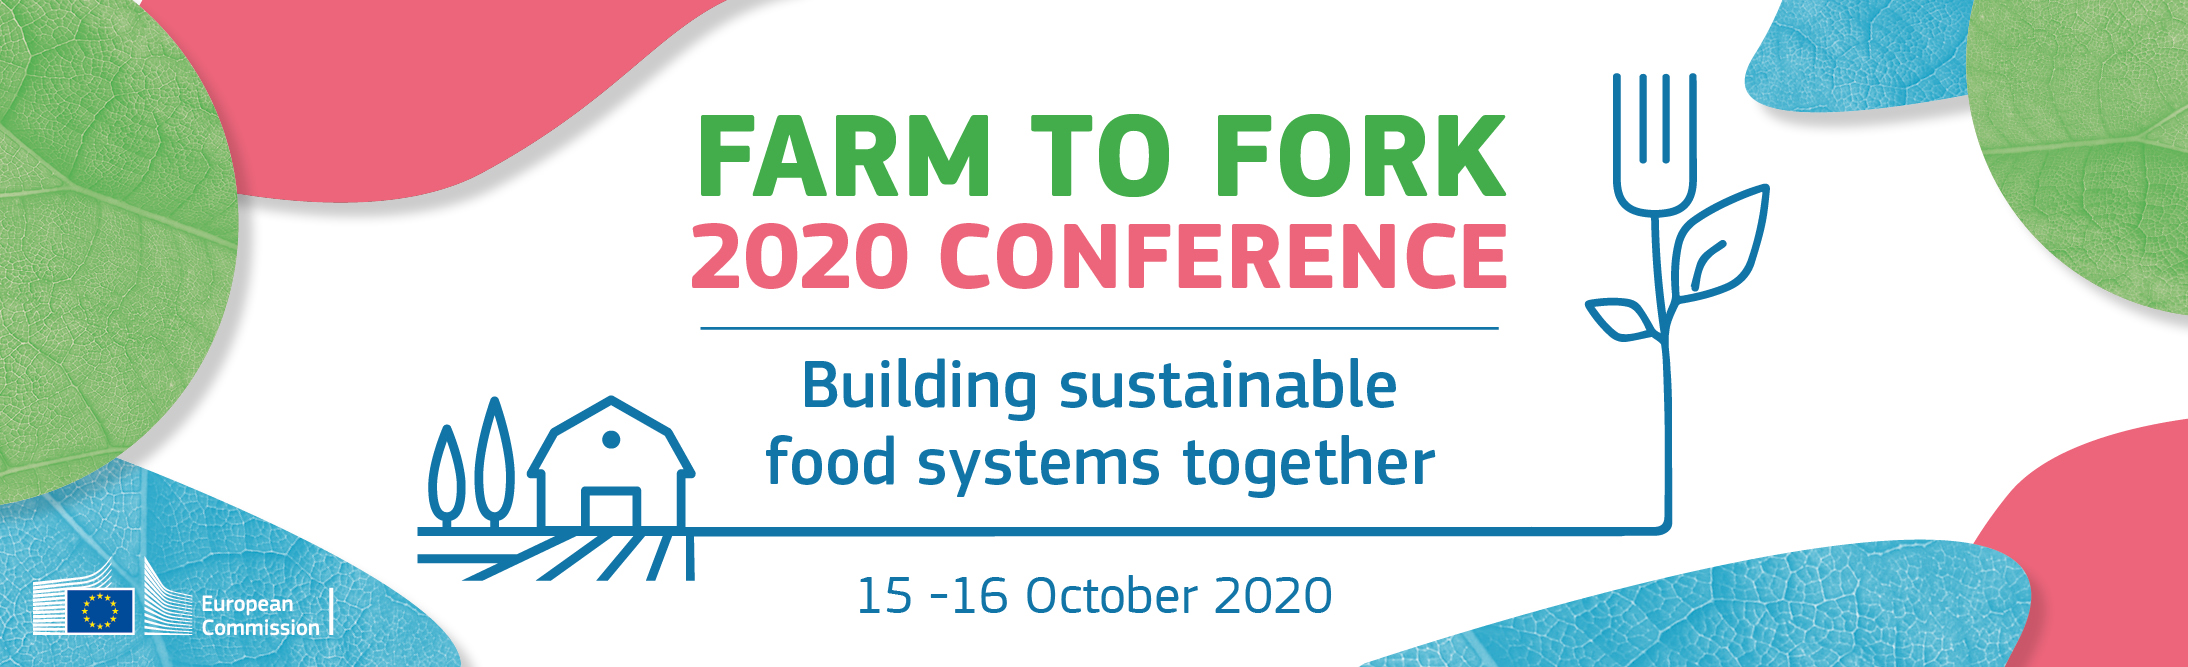 Farm to Fork 2020 conference - Building sustainable food systems together 15 - 16 October 2020